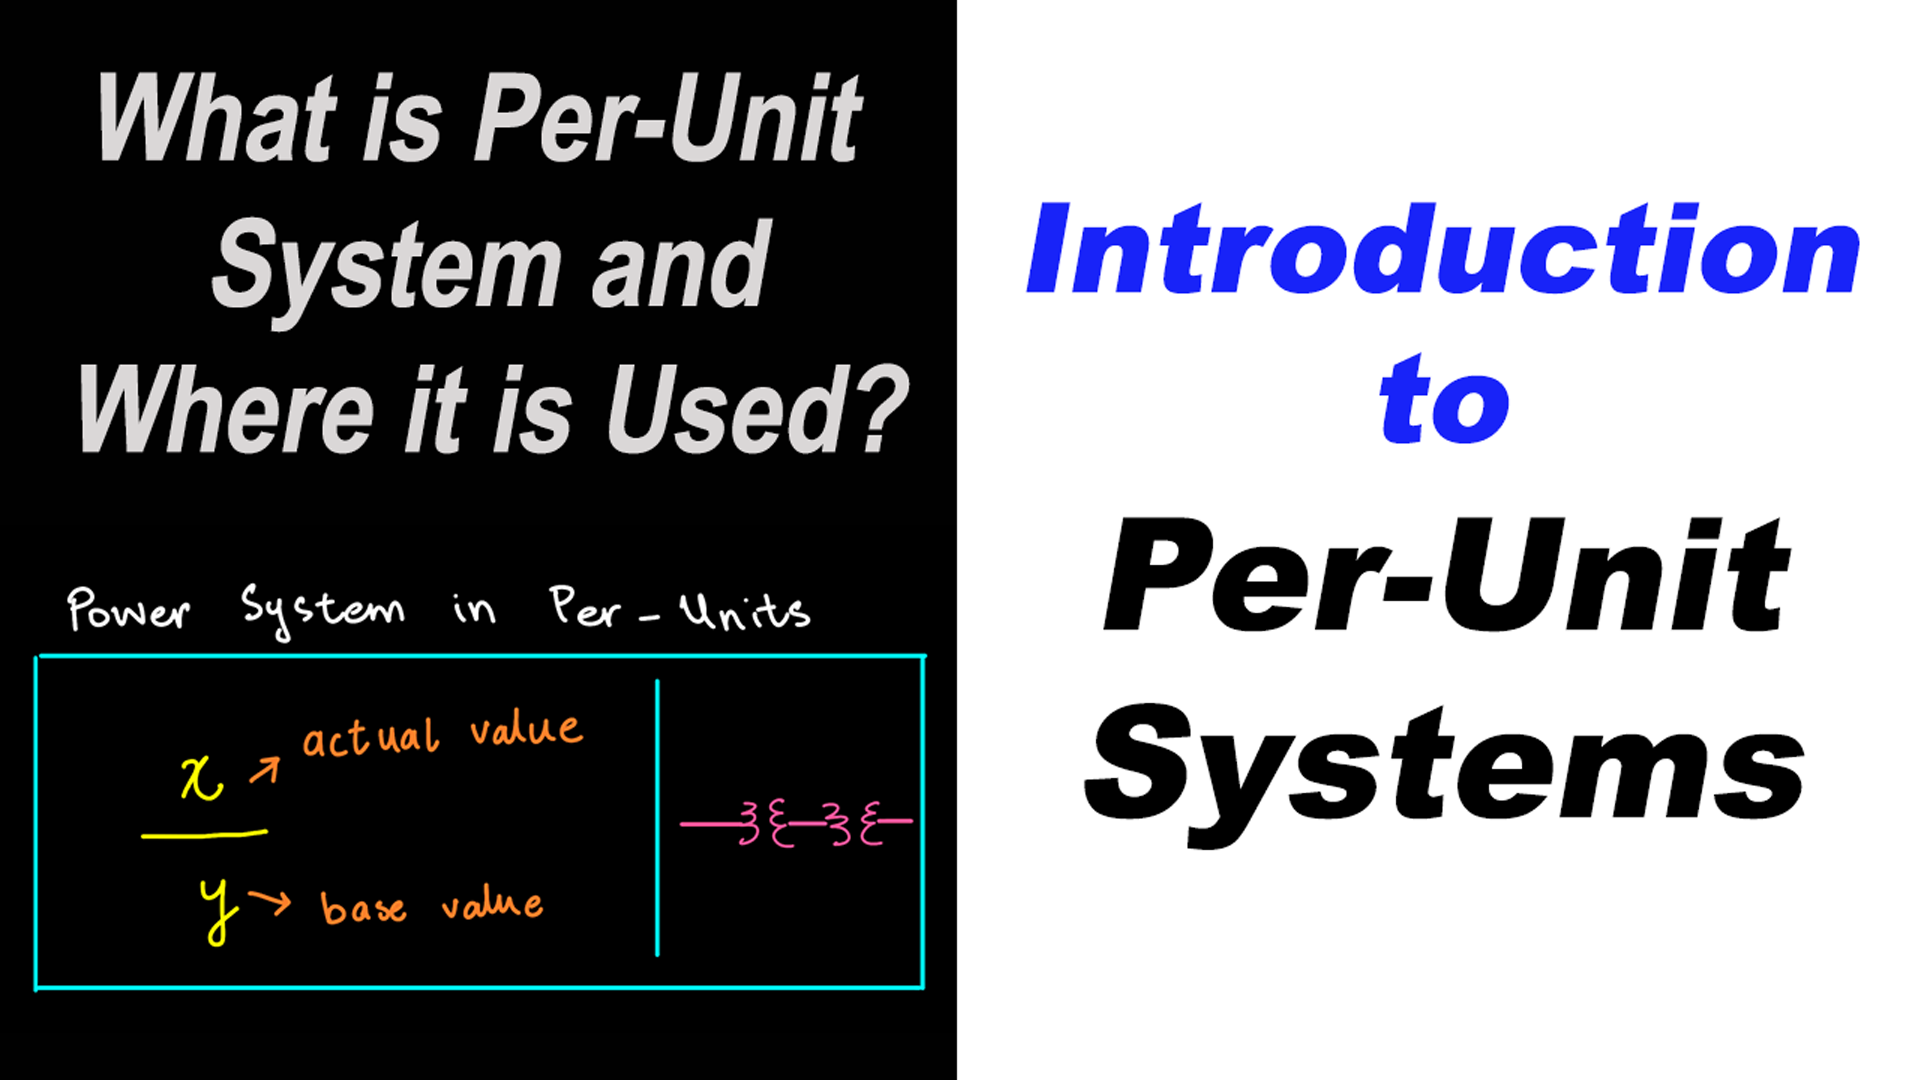 Introduction to Per Unit Systems